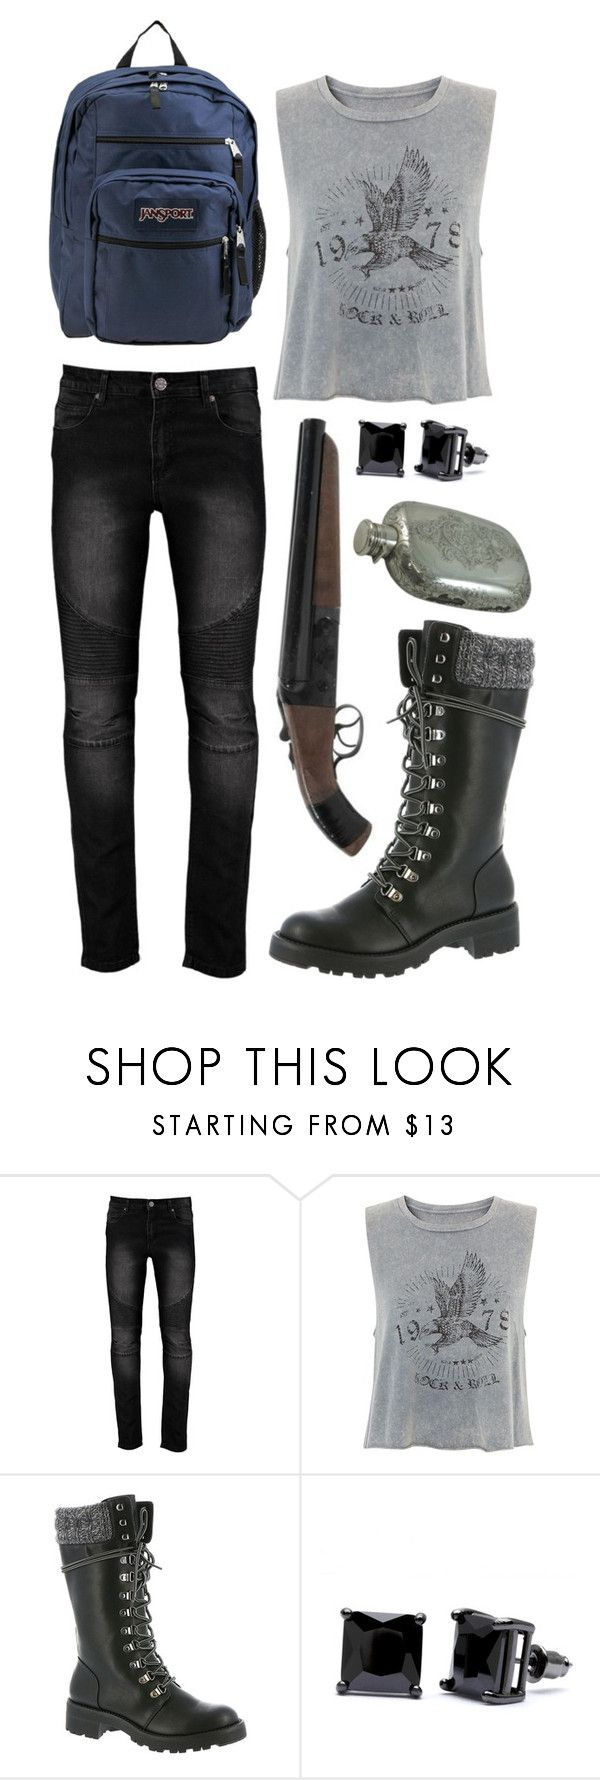 """""""Hunting Outfit #4"""" by silvercookies ❤ liked on Polyvore featuring MIA, Simon Frank and JanSport"""